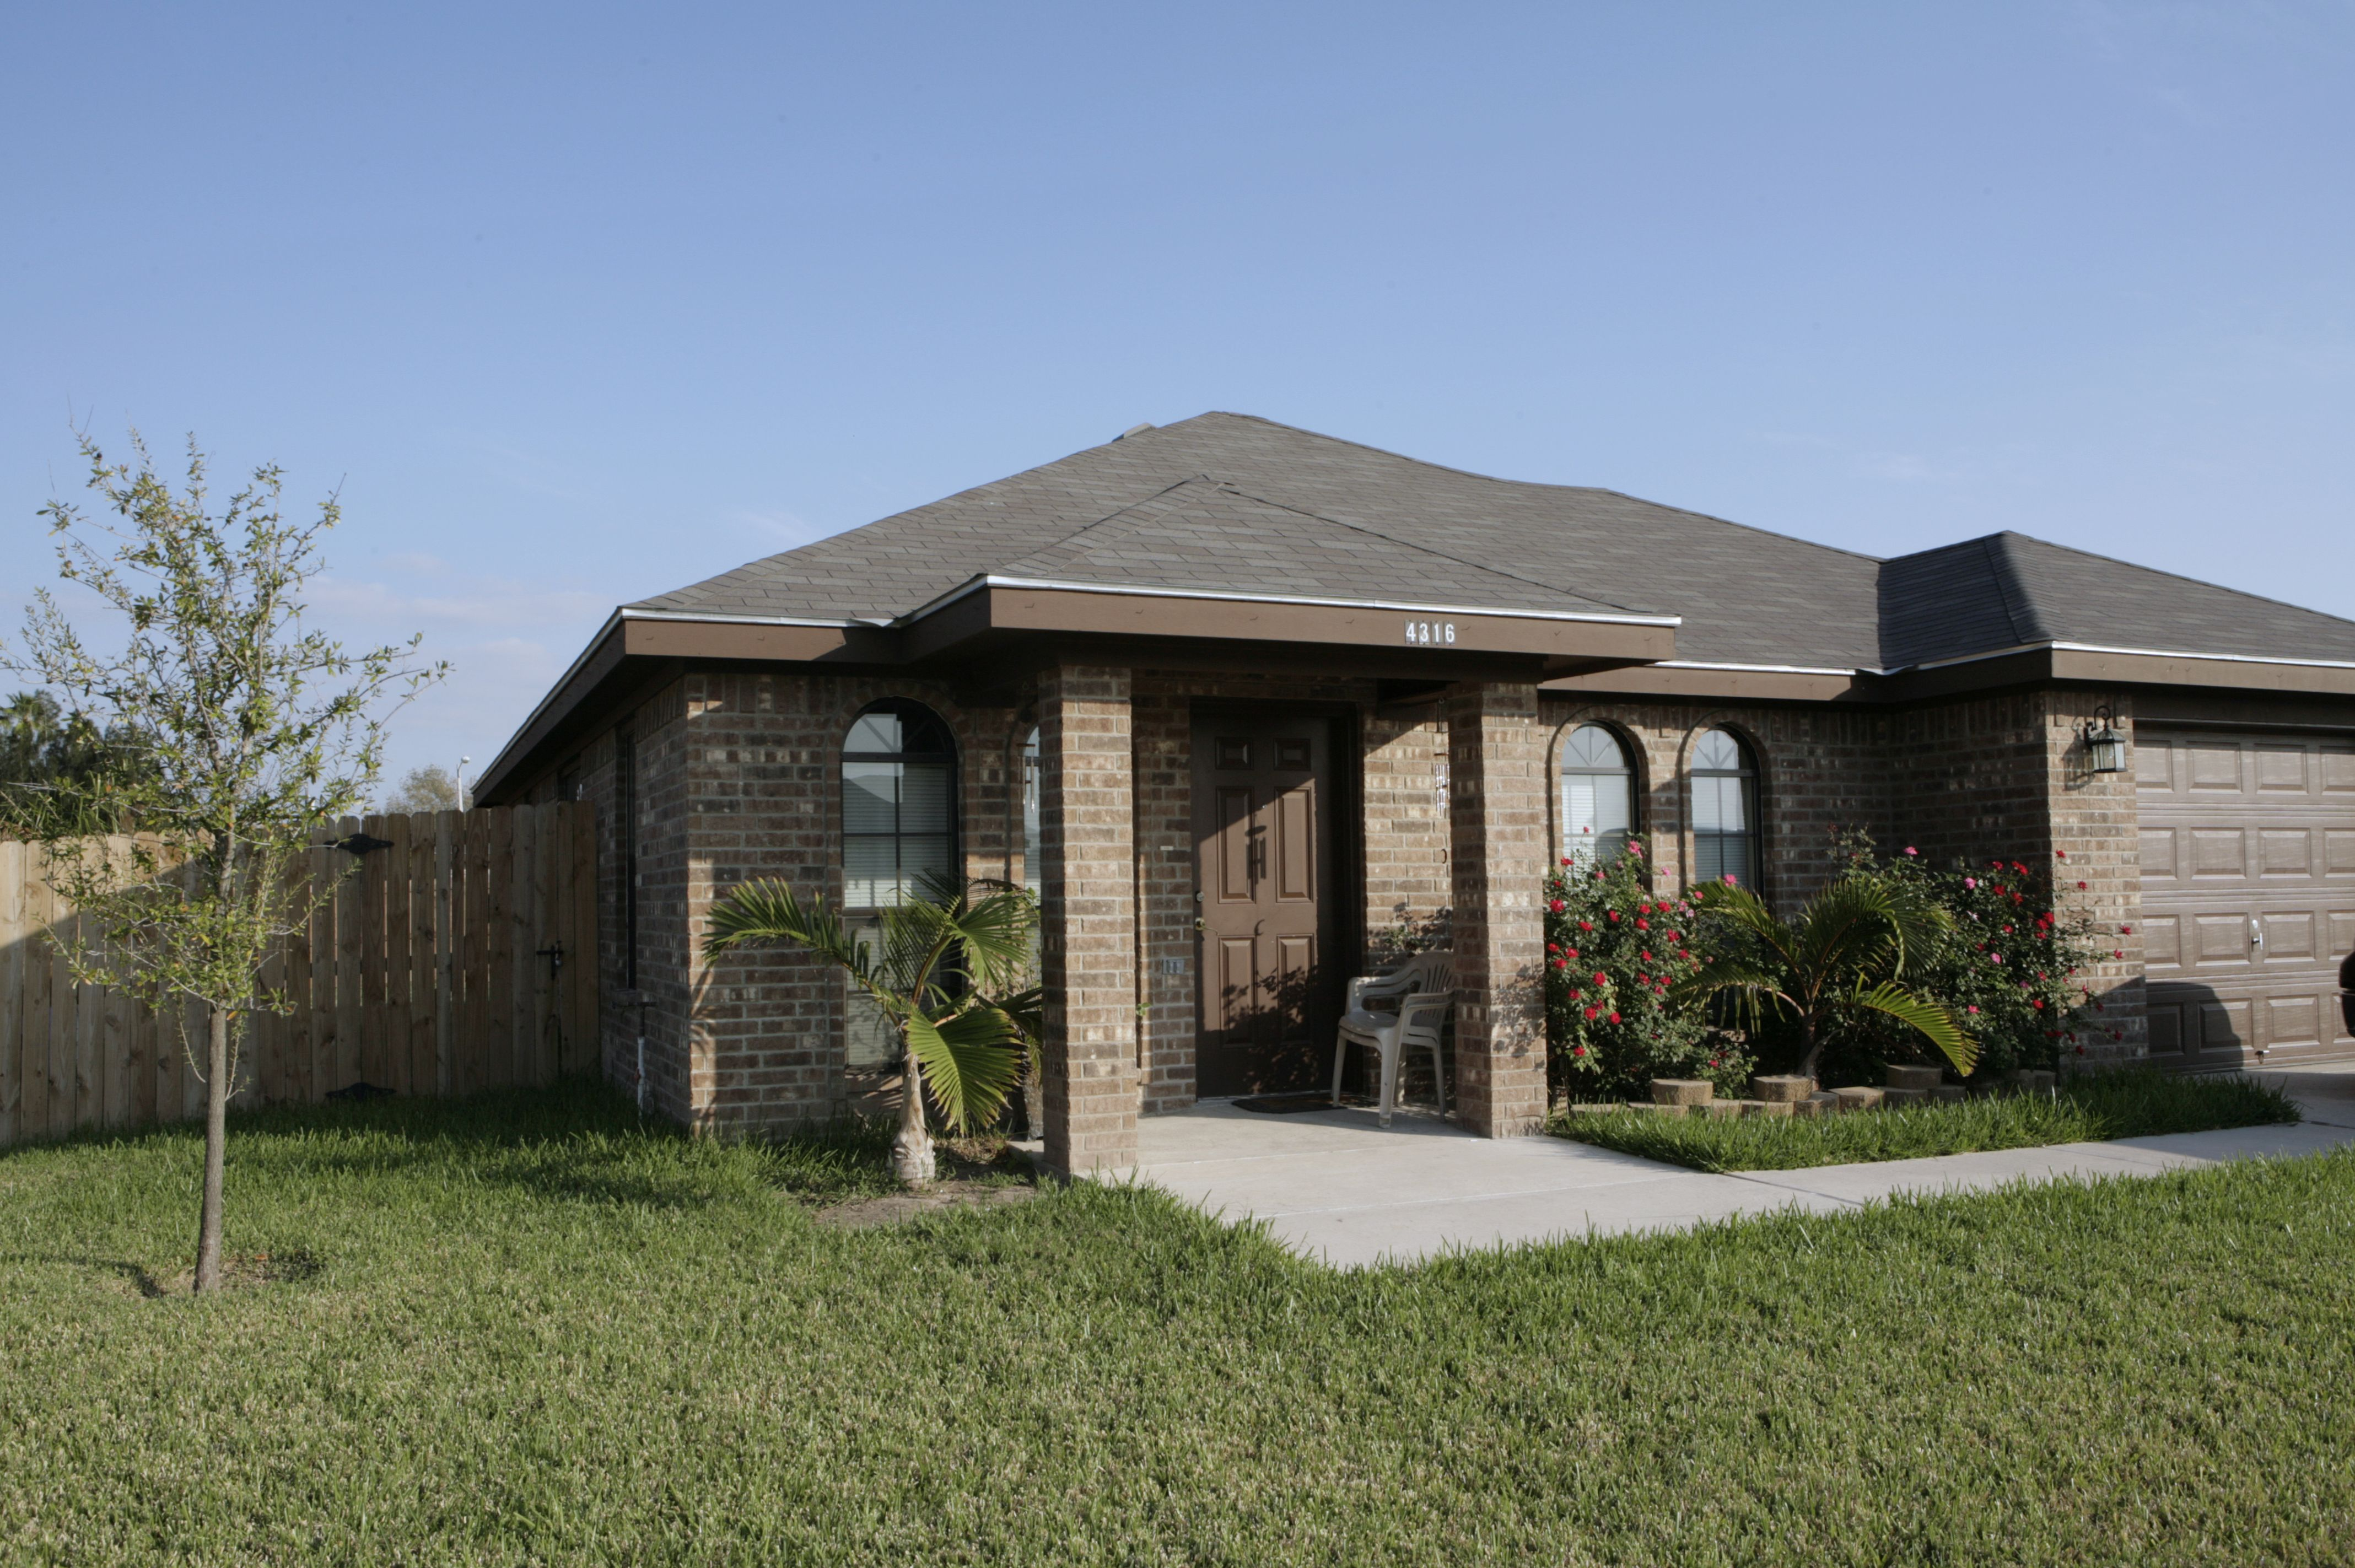 Example Of A Home Built At Affordable Homes Of South Texas - Affordable homes